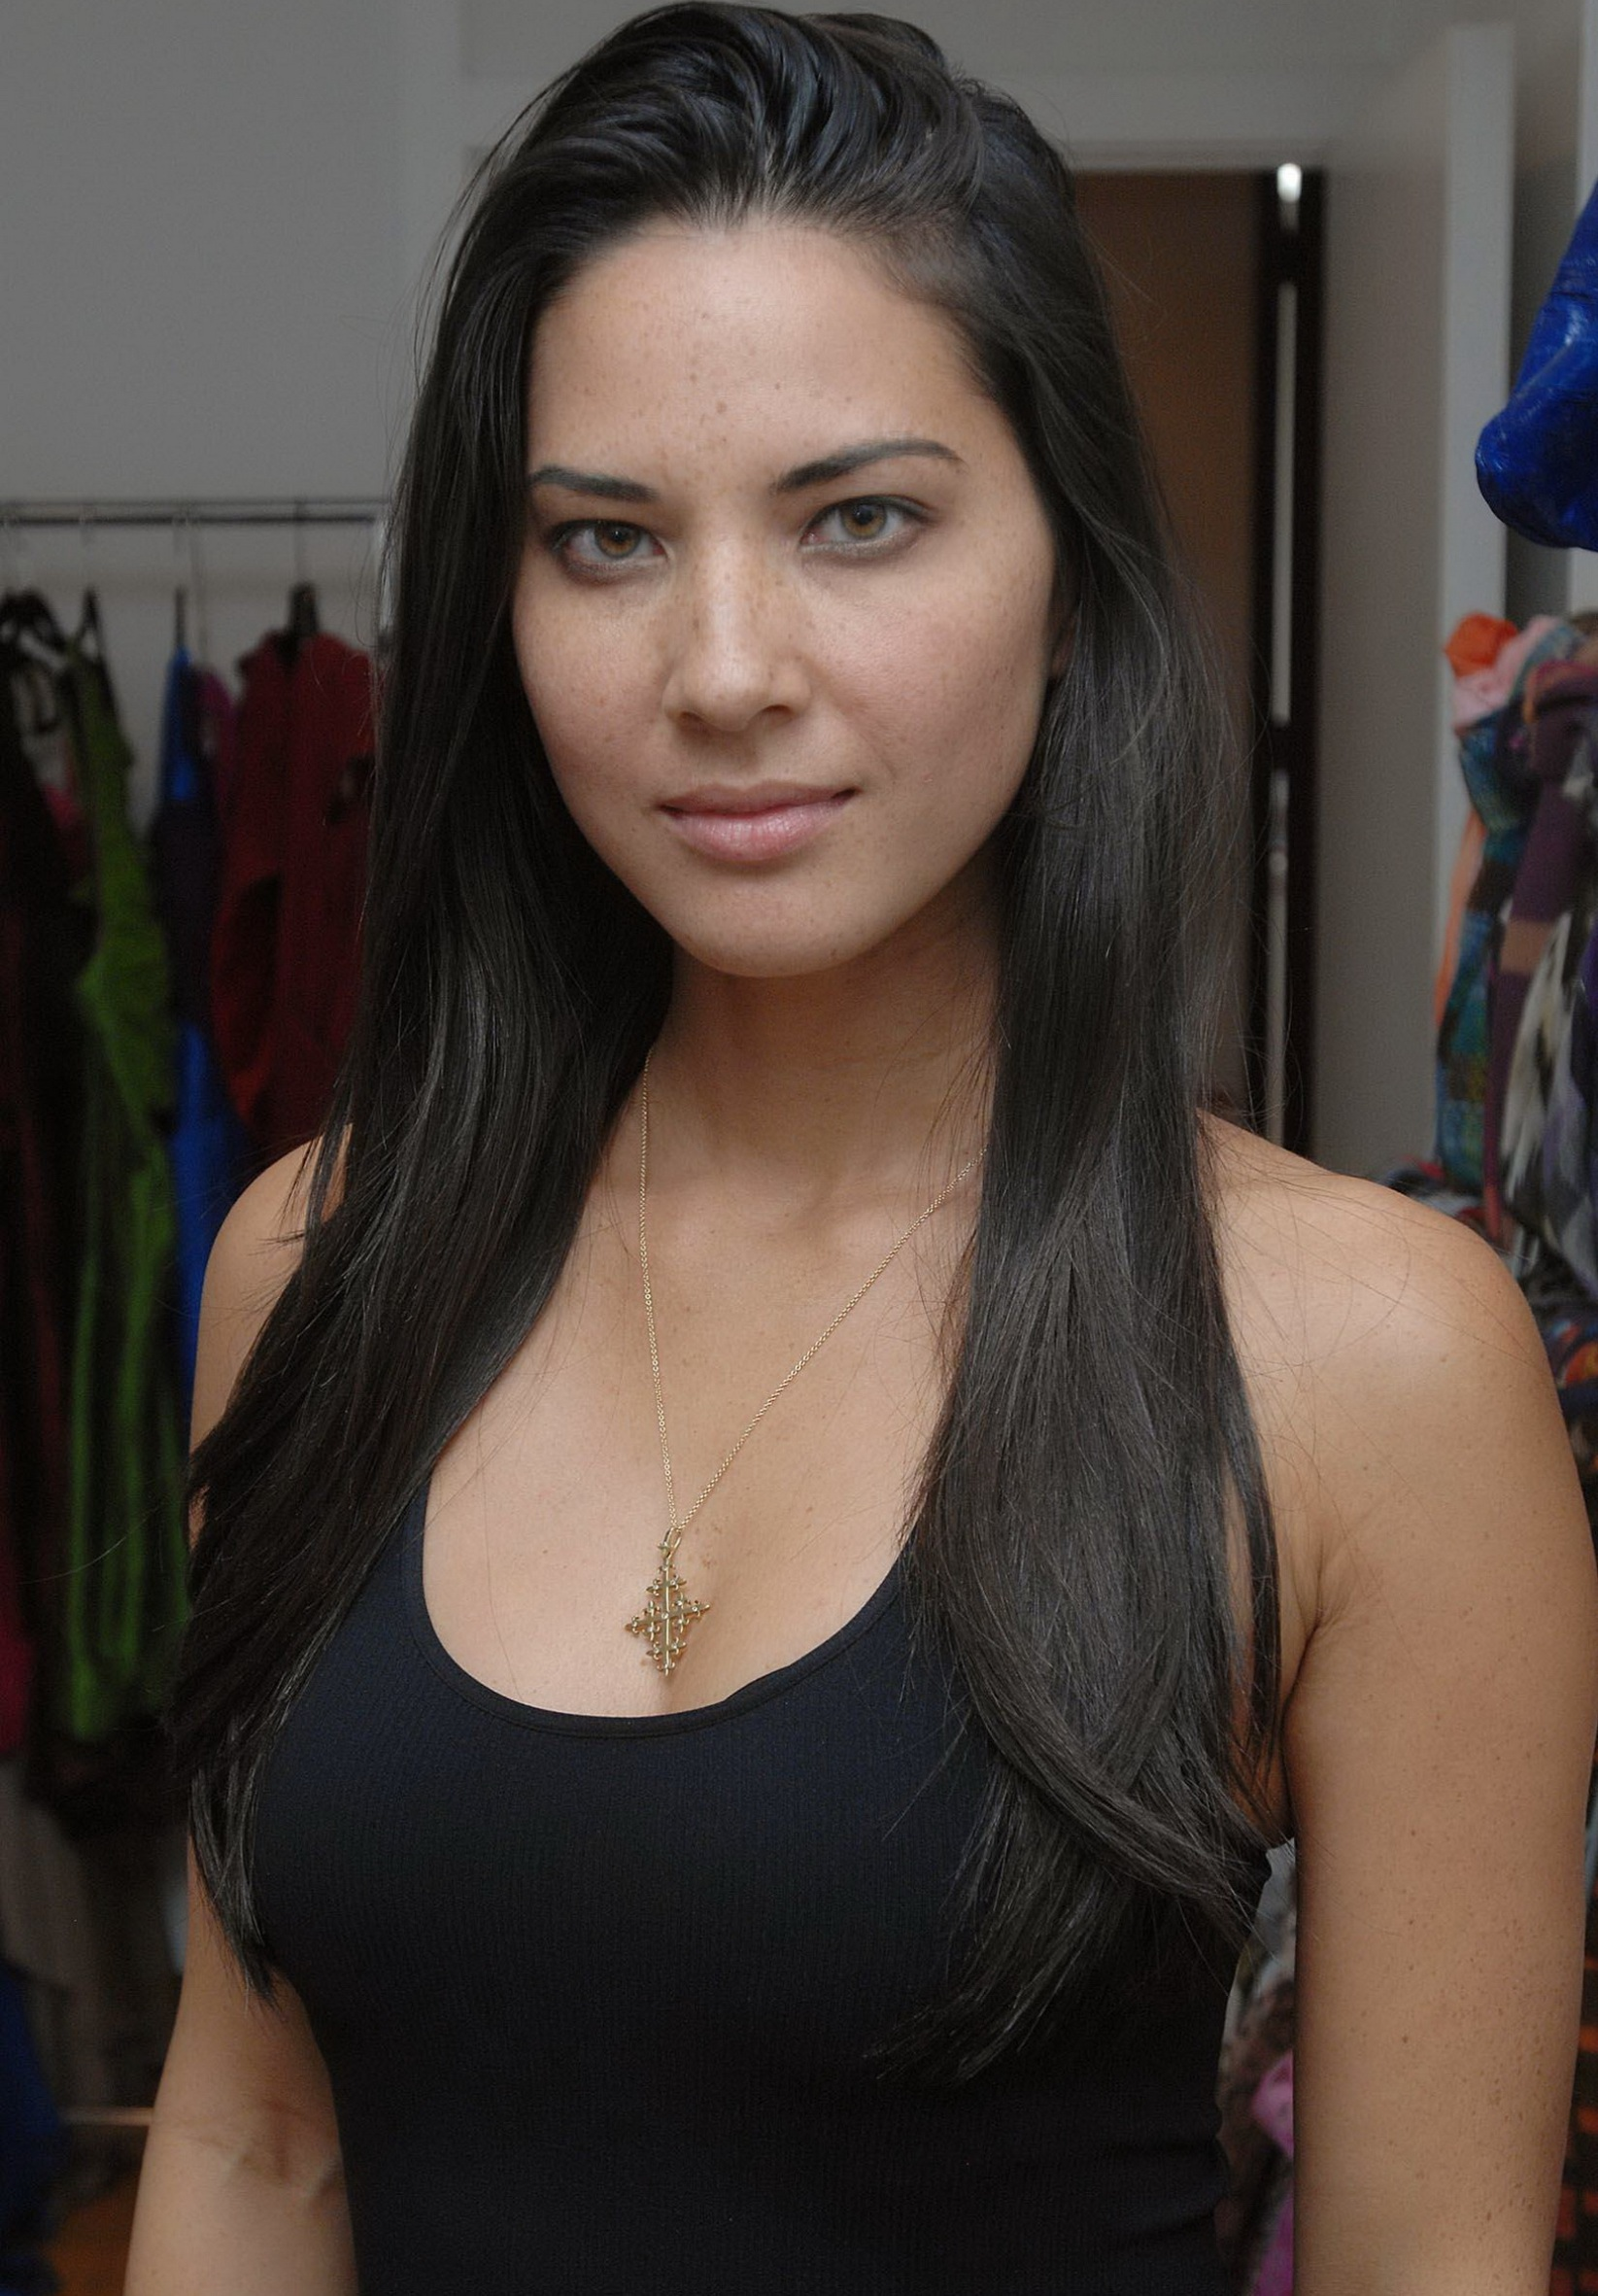 Young Olivia Munn naked (25 images), Selfie